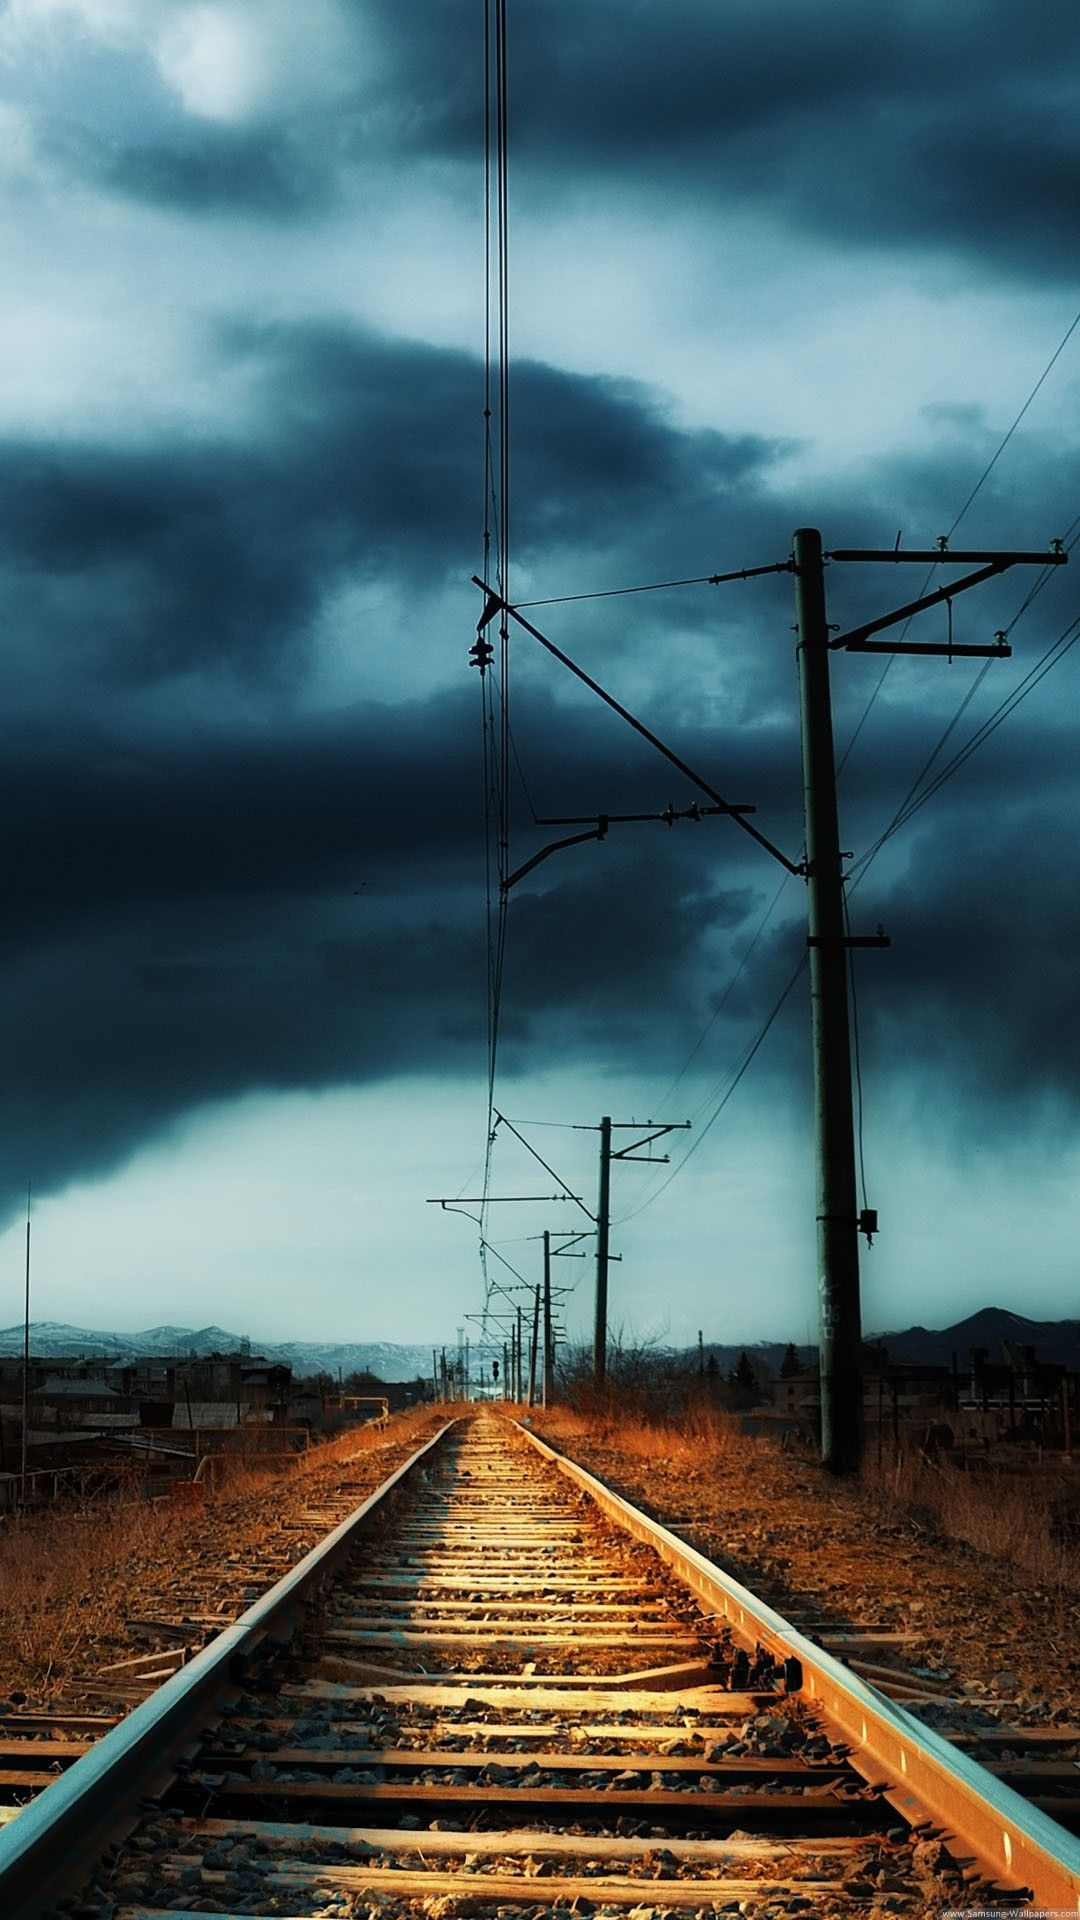 Countryside Railway Storm 4k Hd Android And Iphone Wallpaper